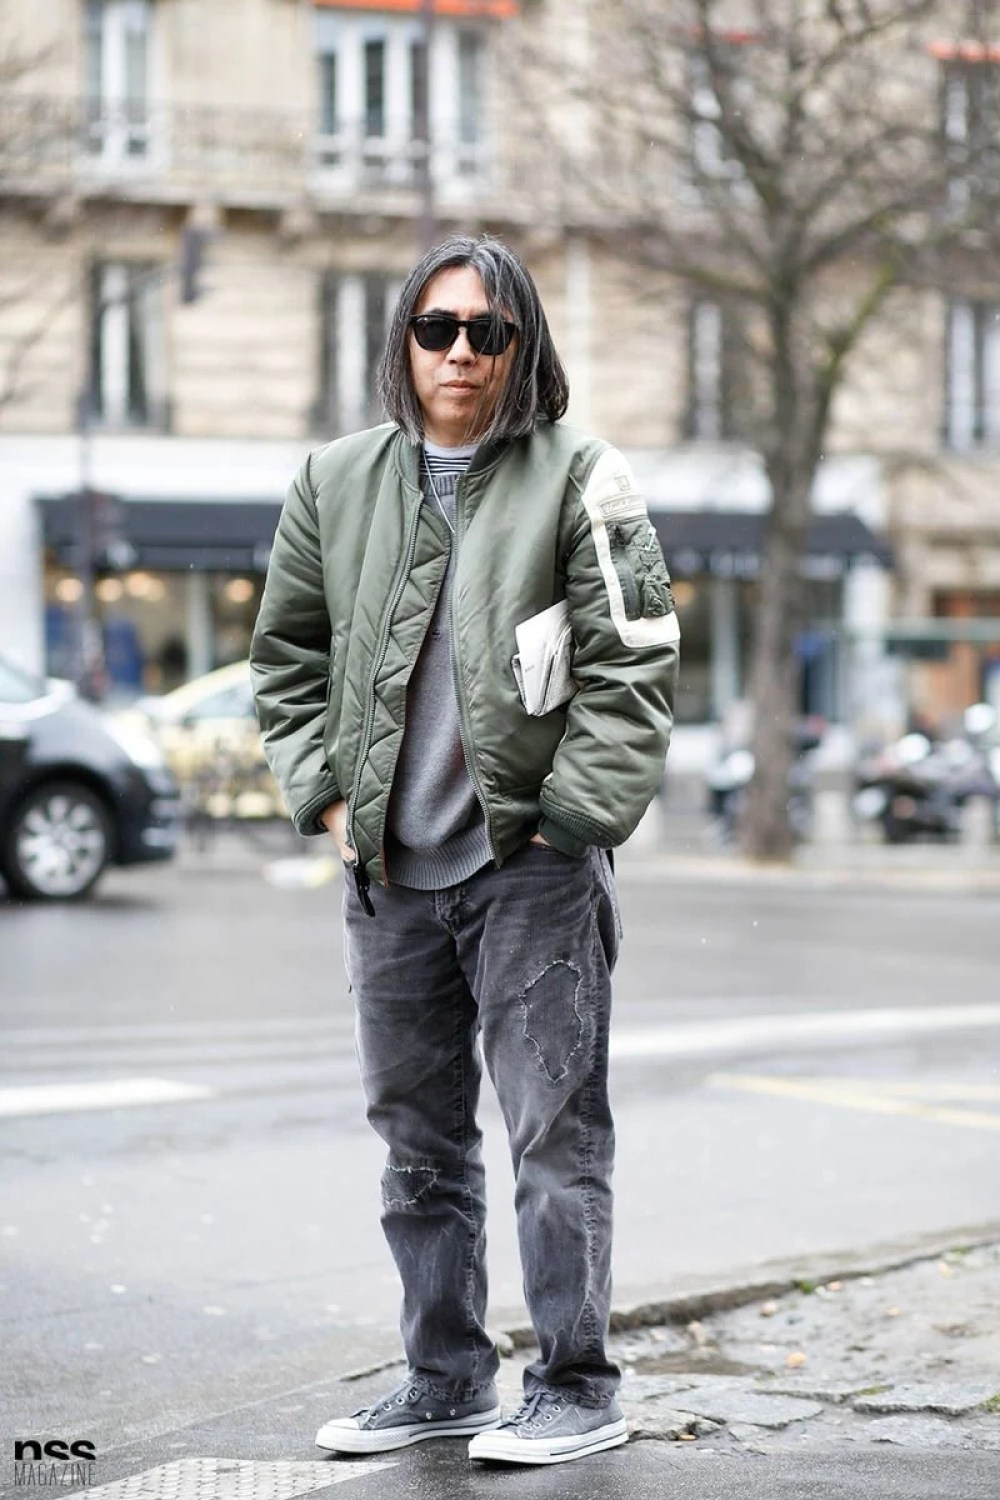 A bomber jacket is an easy layering hack that elevates cold weather styling.